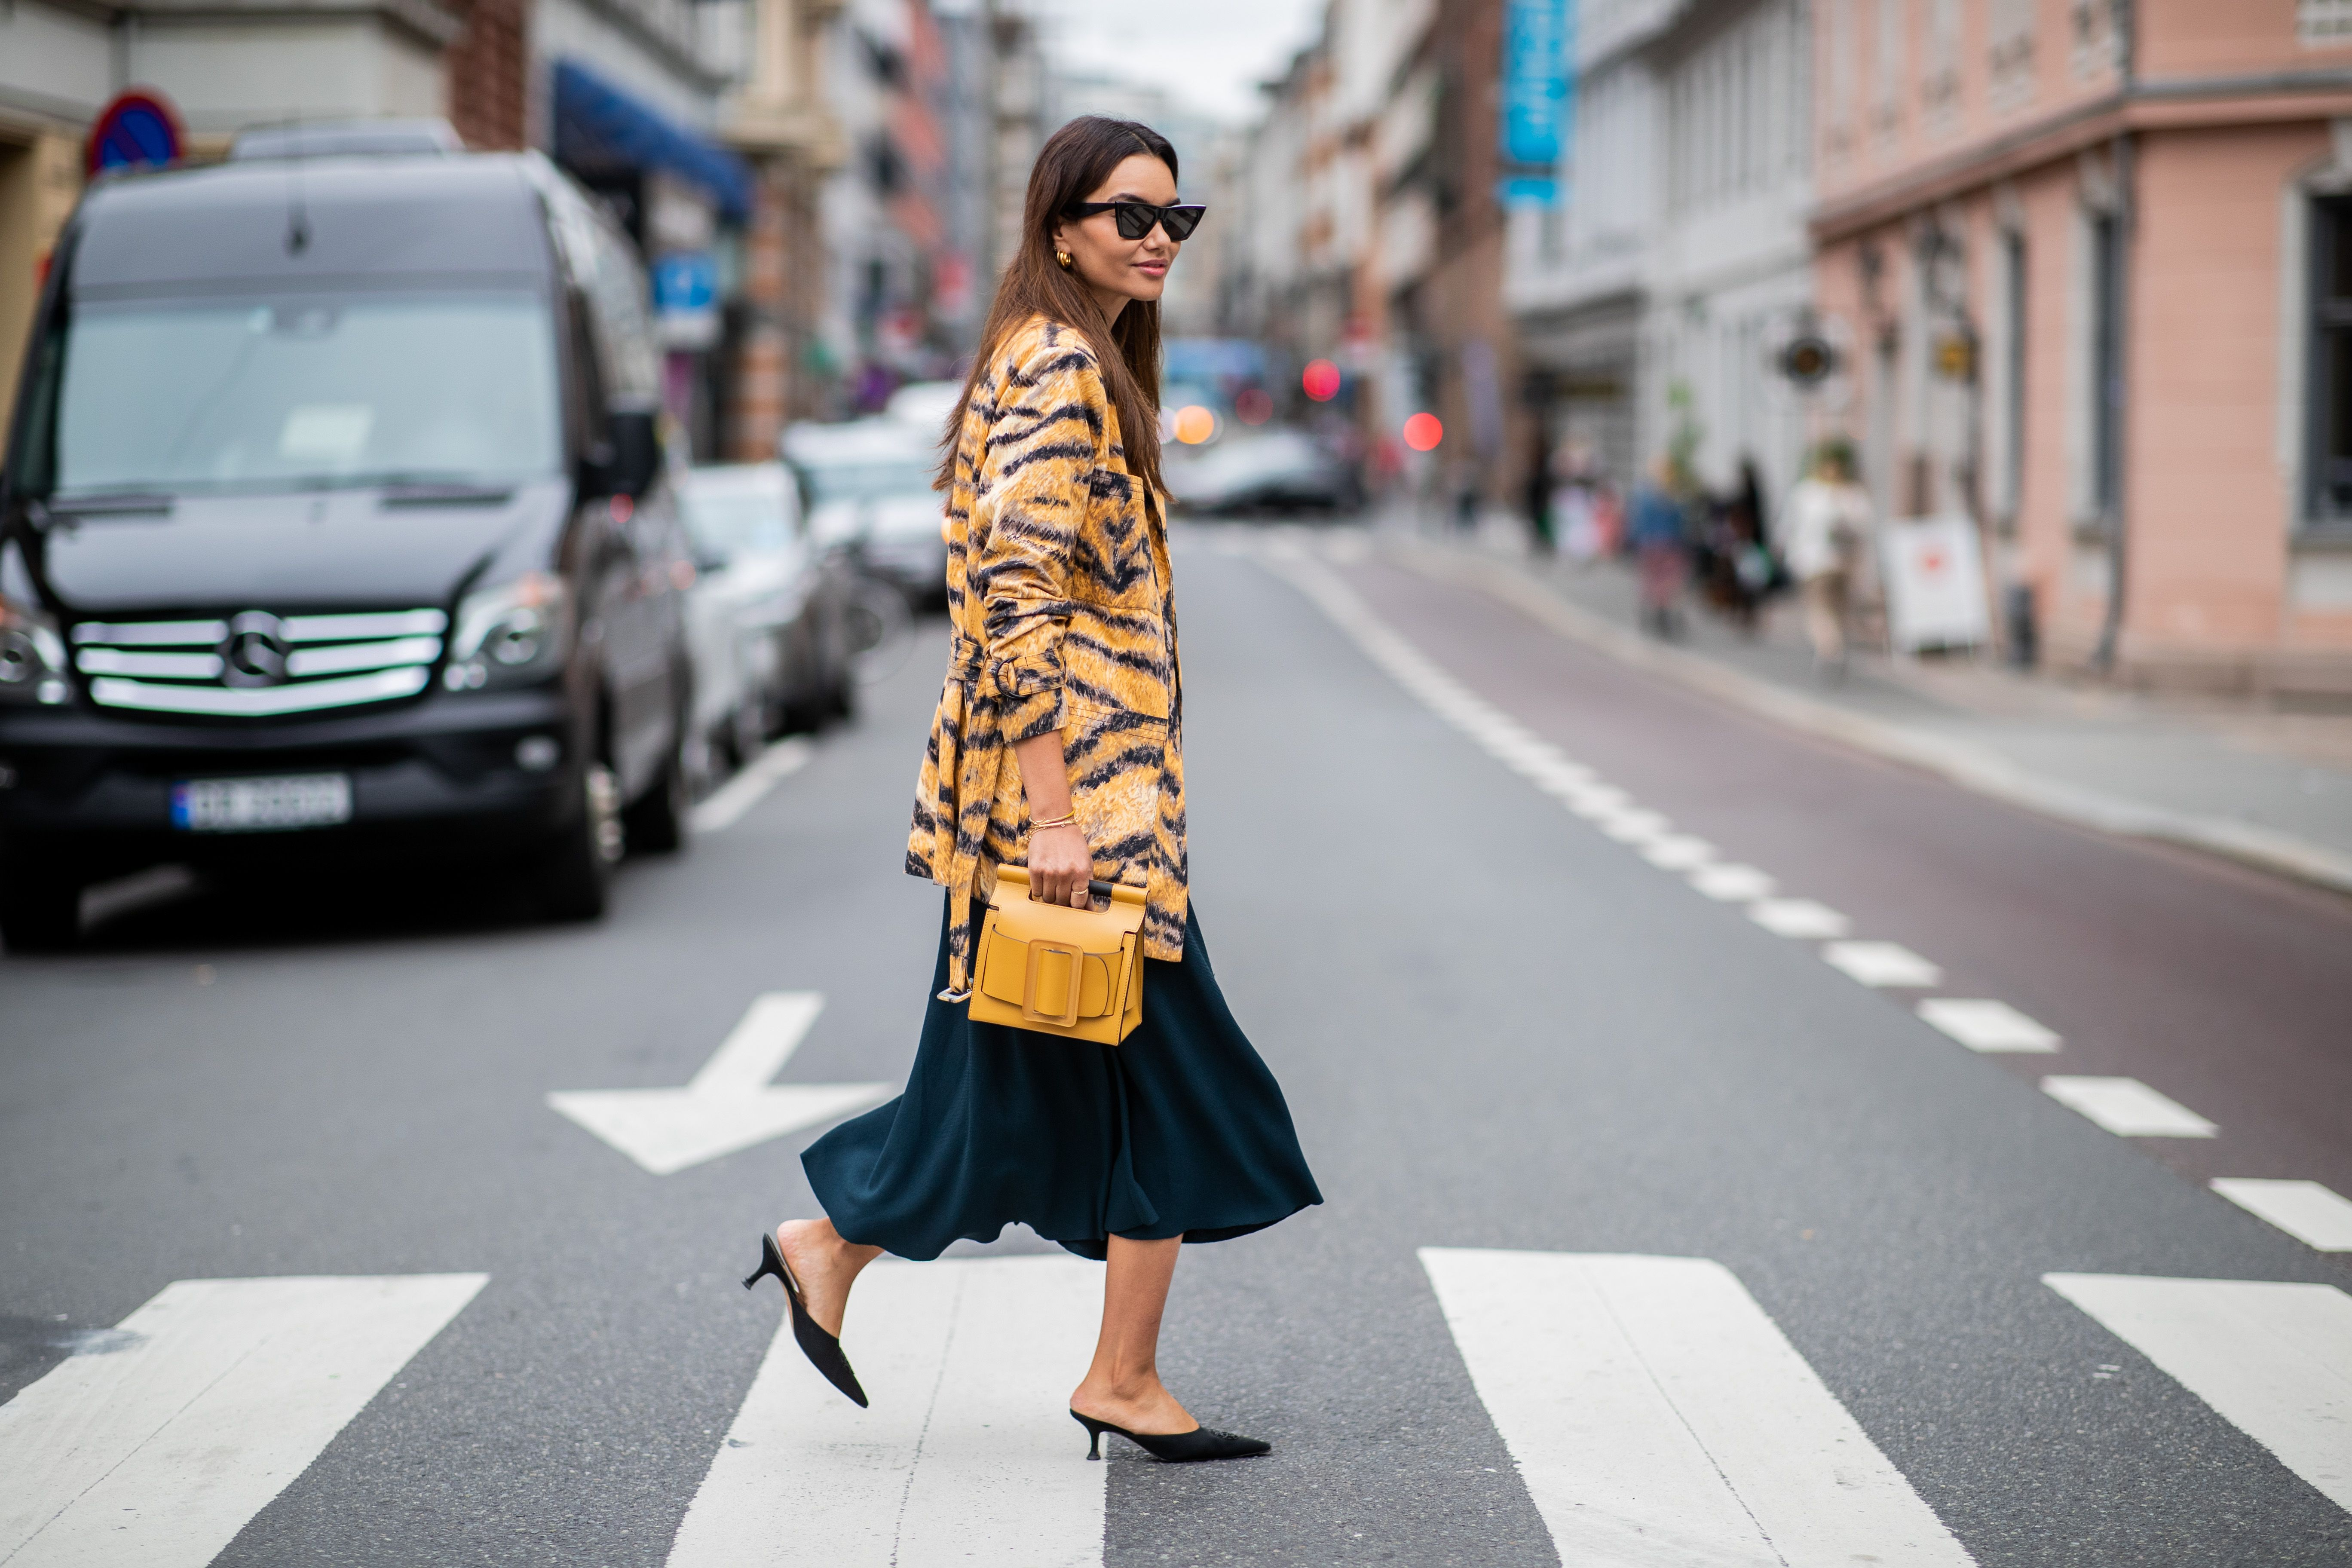 Wear You Would Tiger Print? advise to wear for everyday in 2019